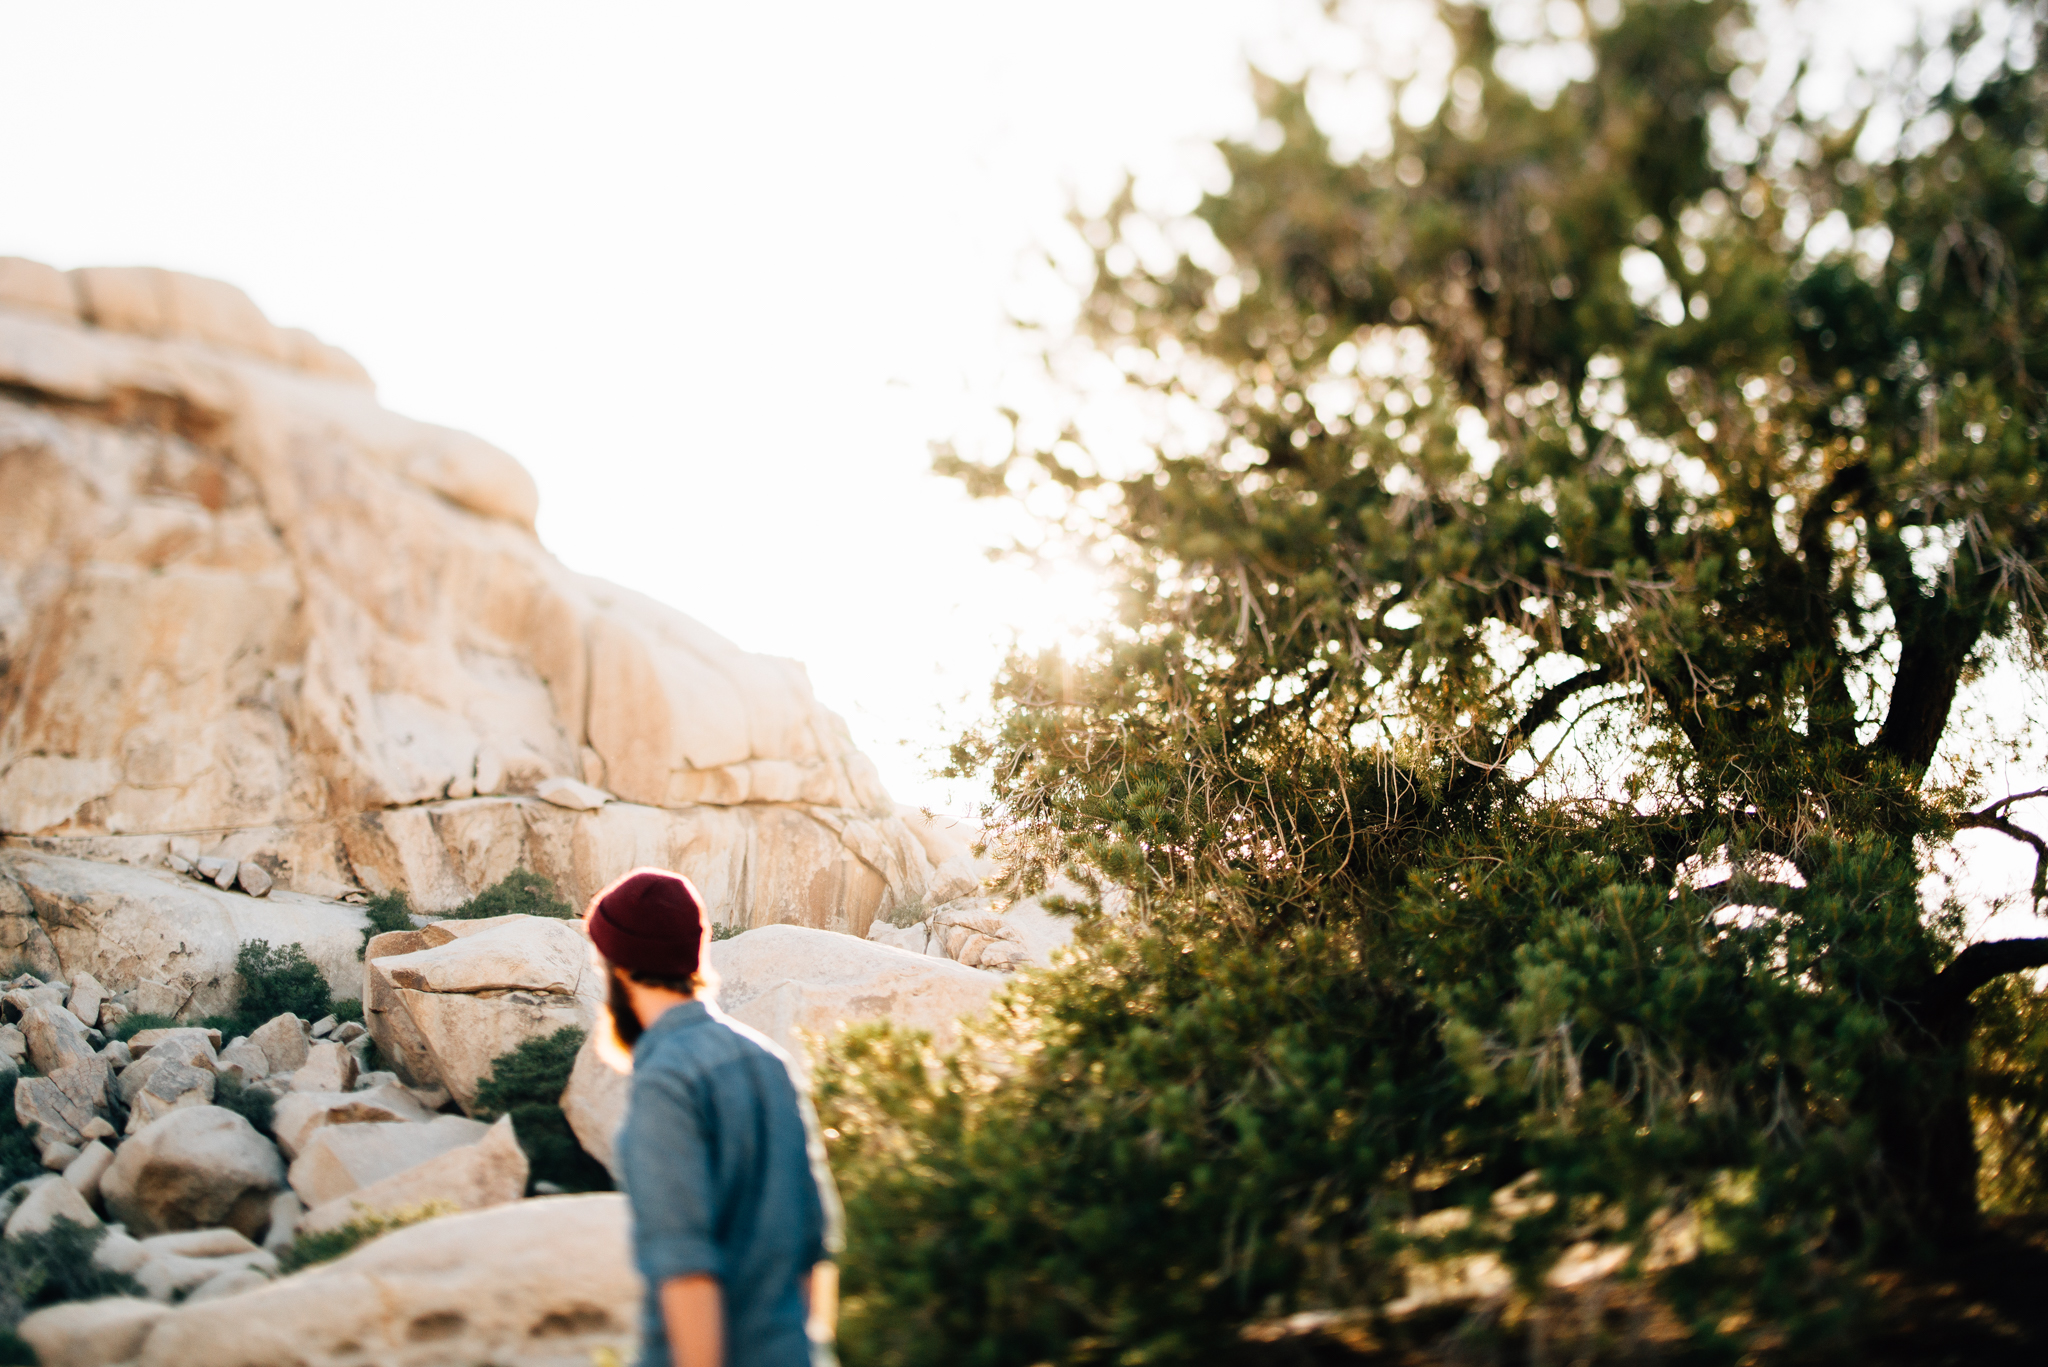 ©The Ryans Photography - Los Angeles Travel - Joshua Tree National Park-011-2.jpg